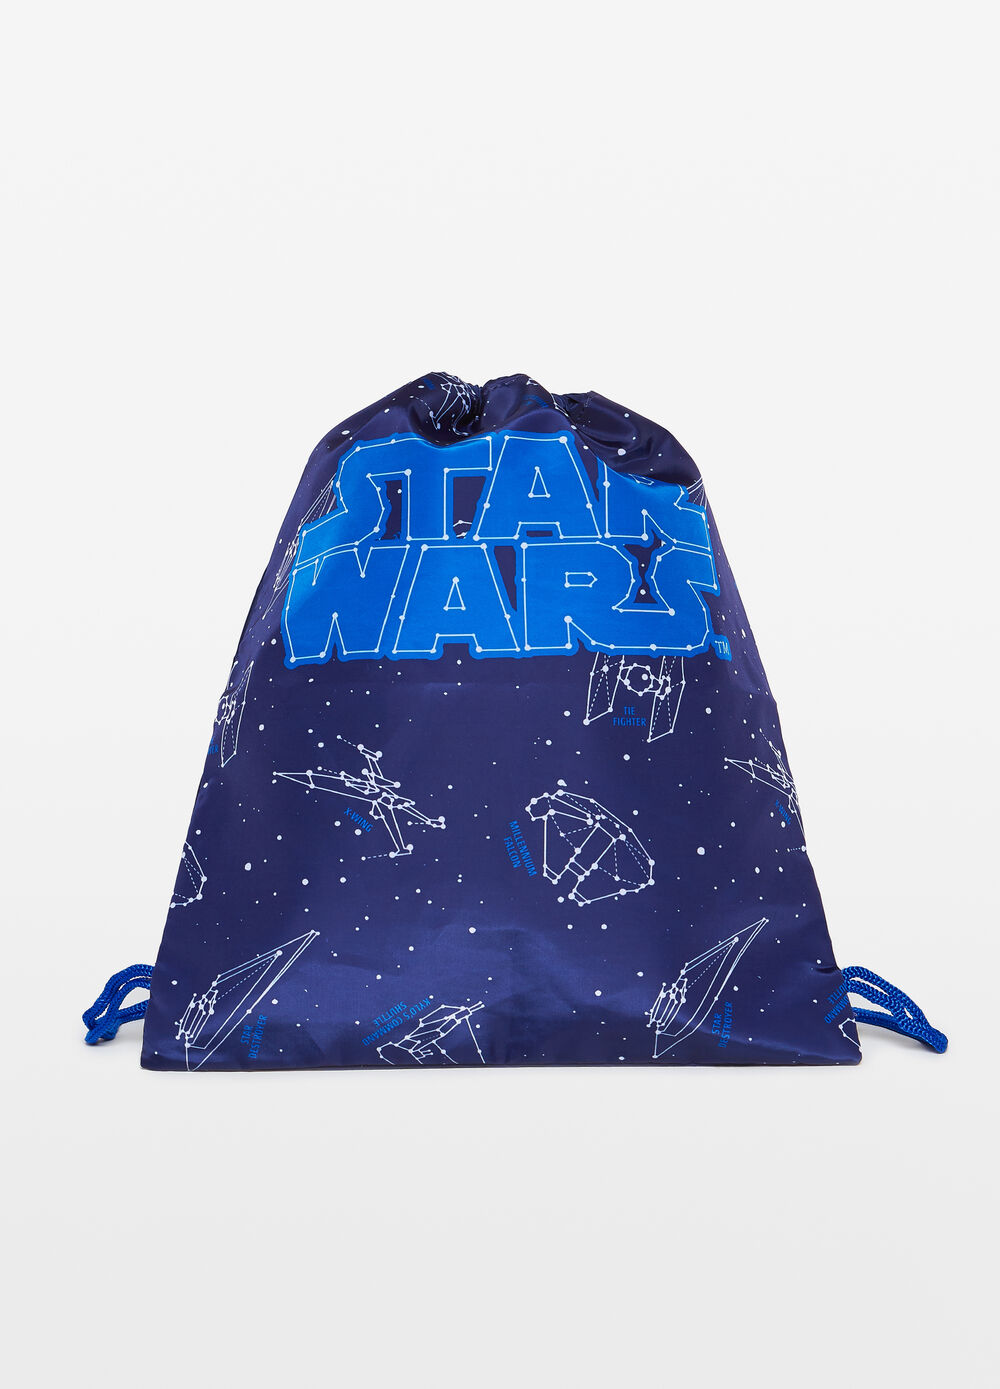 Bag with Star Wars print and pattern